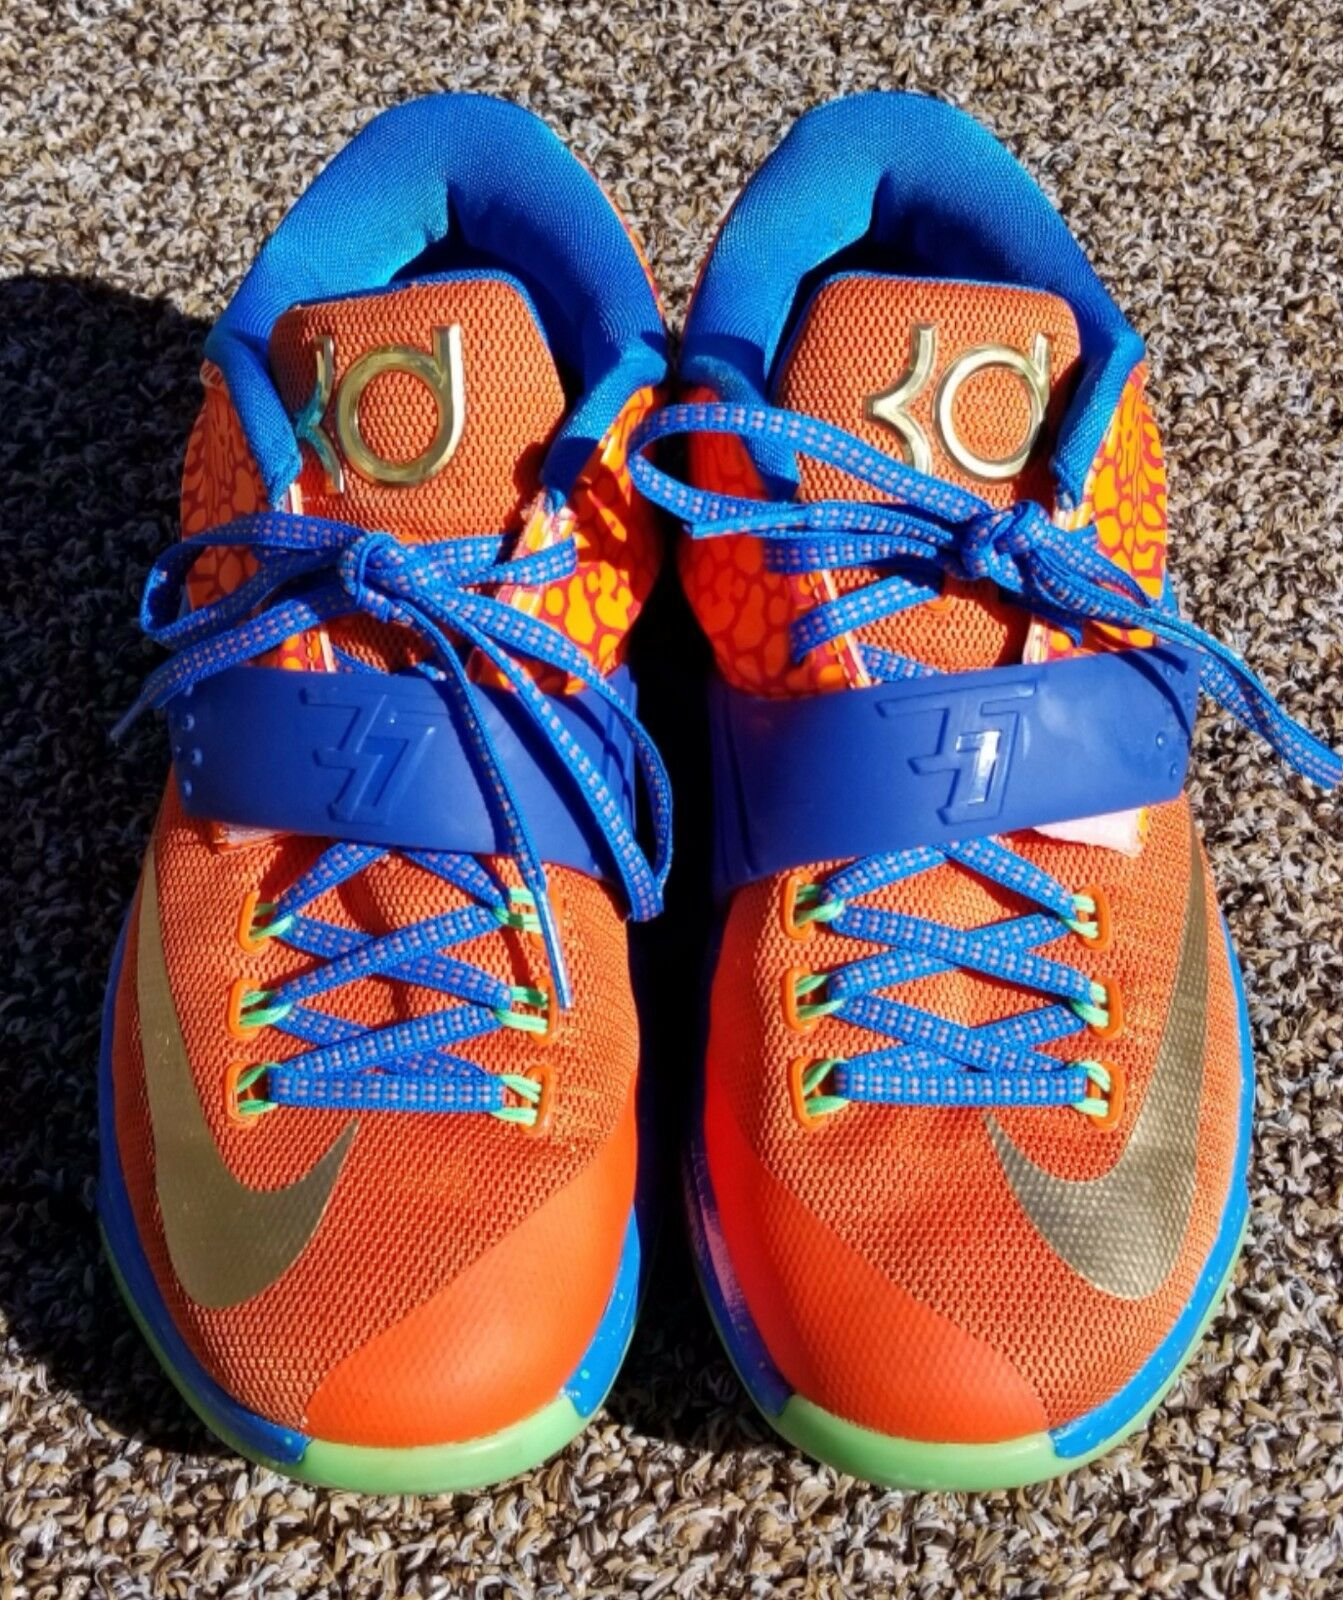 Nike id men's size 7 basketball sneakers orange and bluee with gold swish